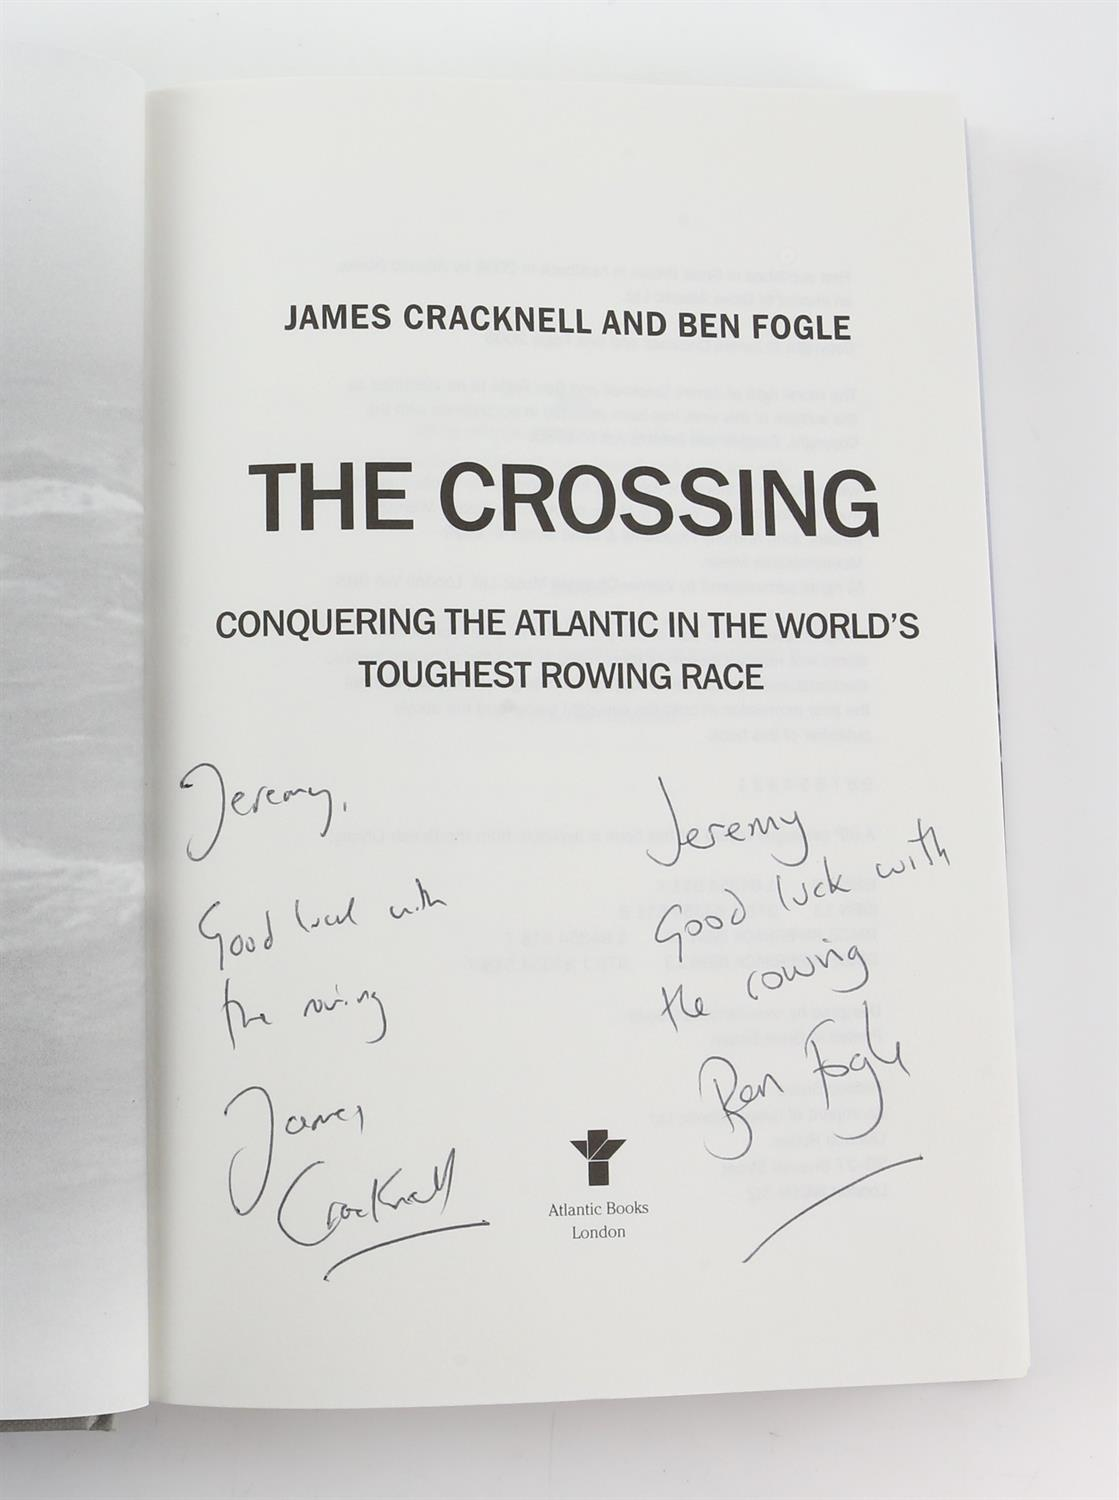 9 autographed books signed by Lauren Bacall, Richard Todd, Michael Palin, Leslie Caron, - Image 9 of 10